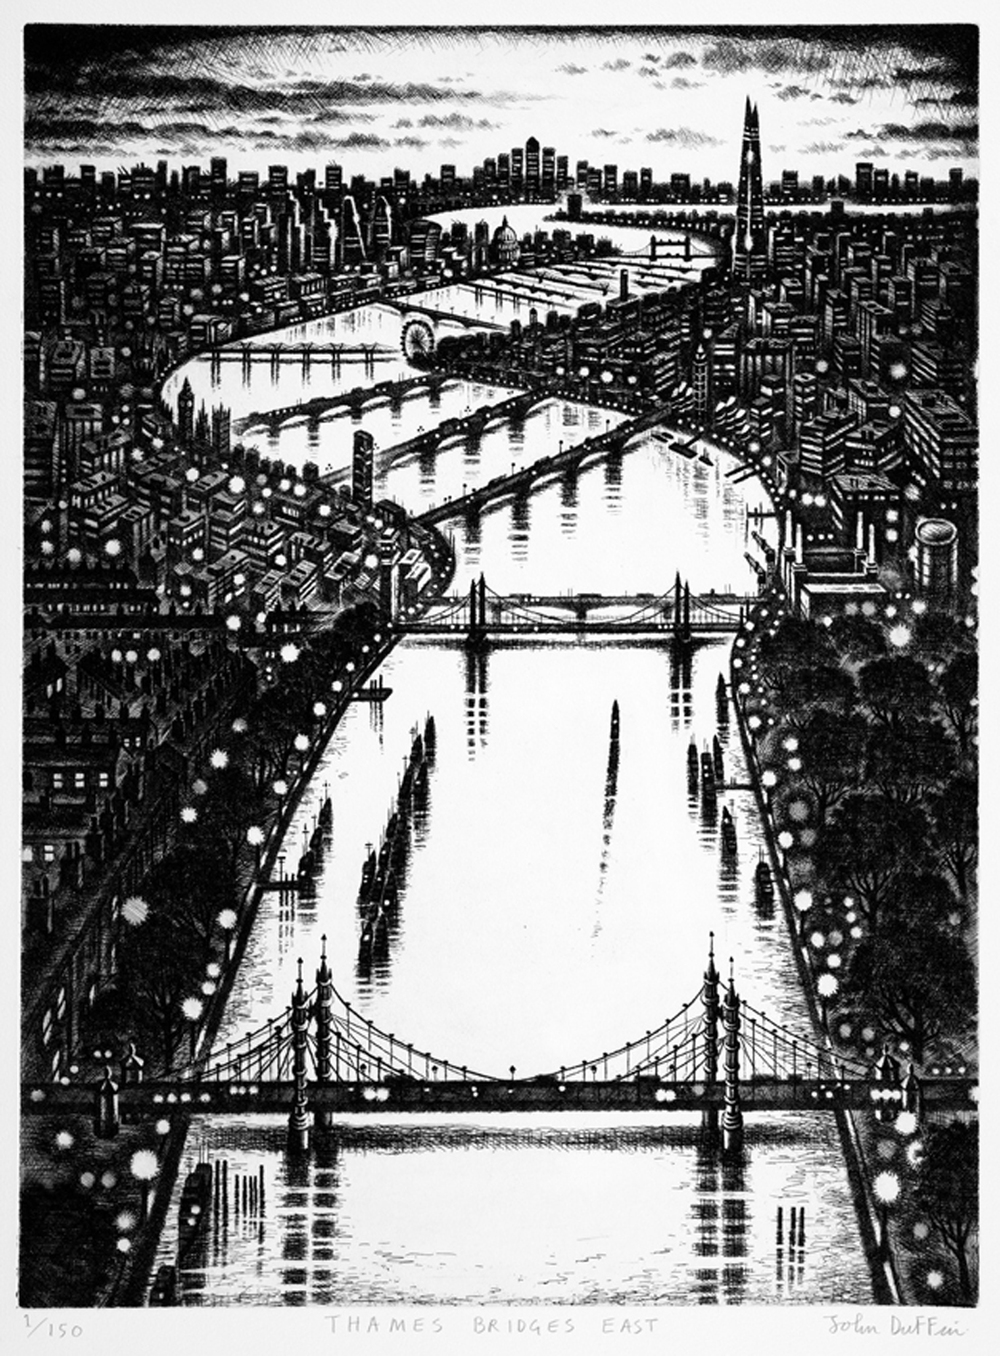 Thames Bridges East etching